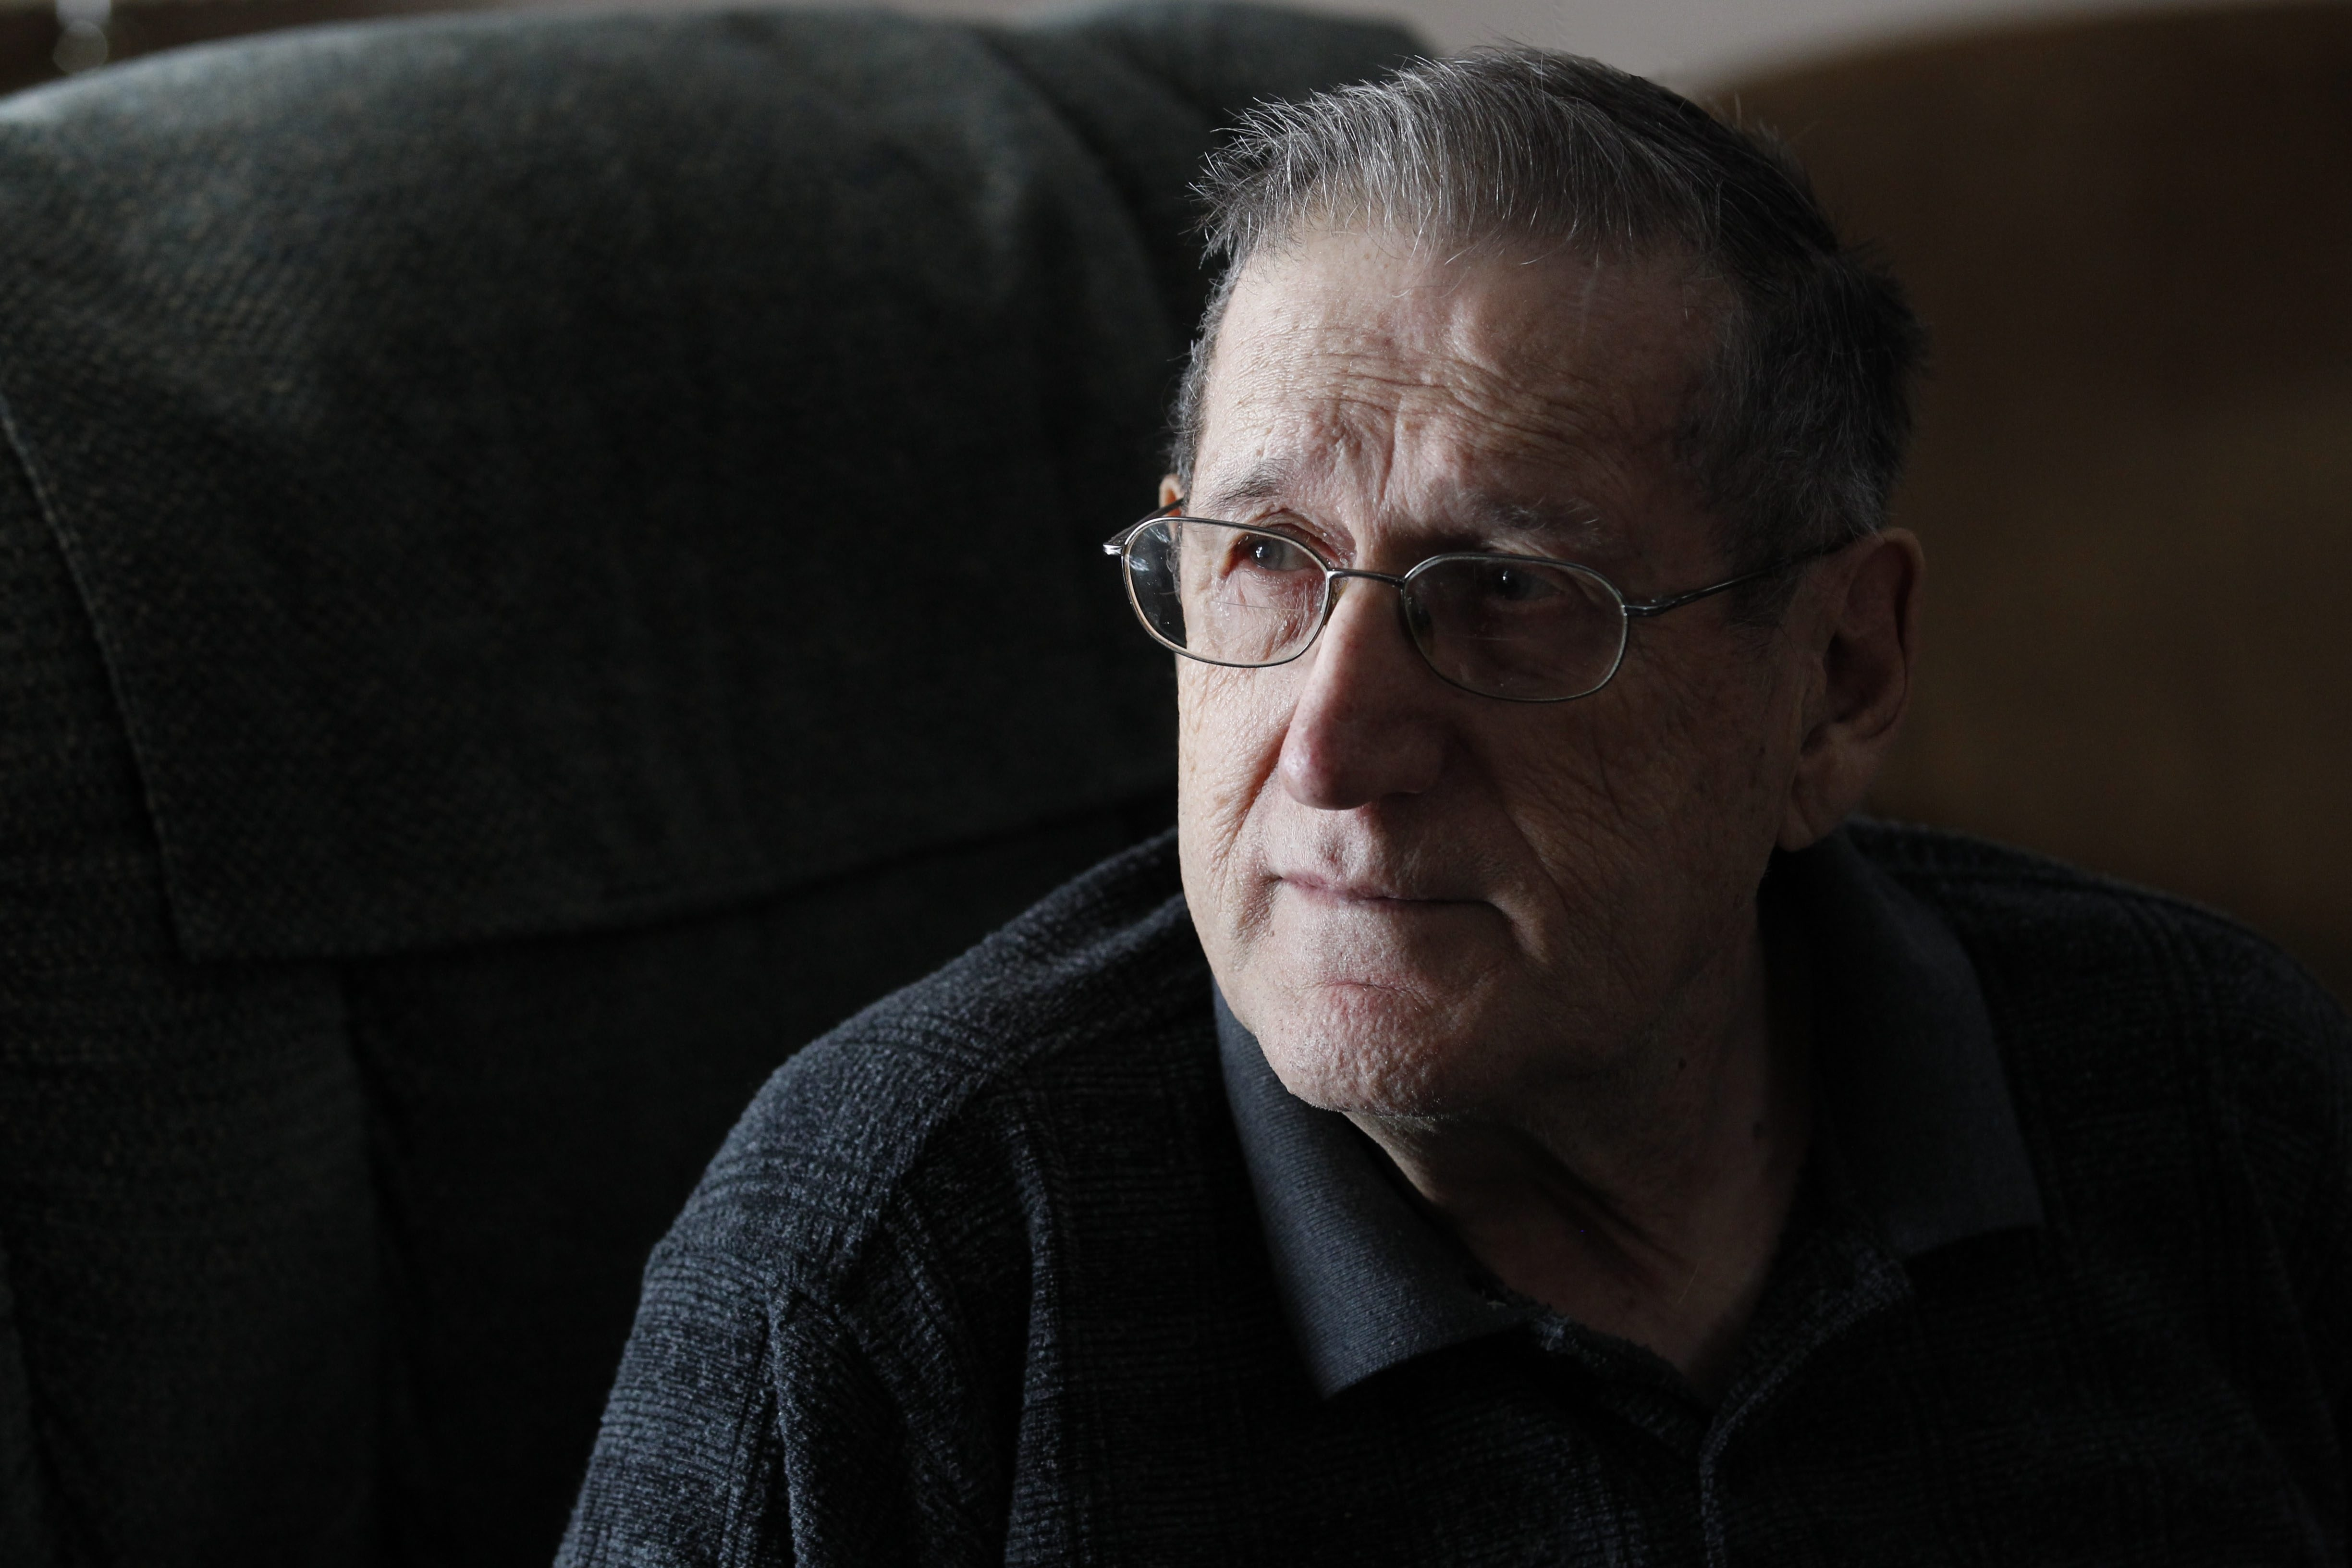 Robert C. Enser was able to unseal his war memories after a visit five years ago from a brother-in-law who had served in Vietnam.